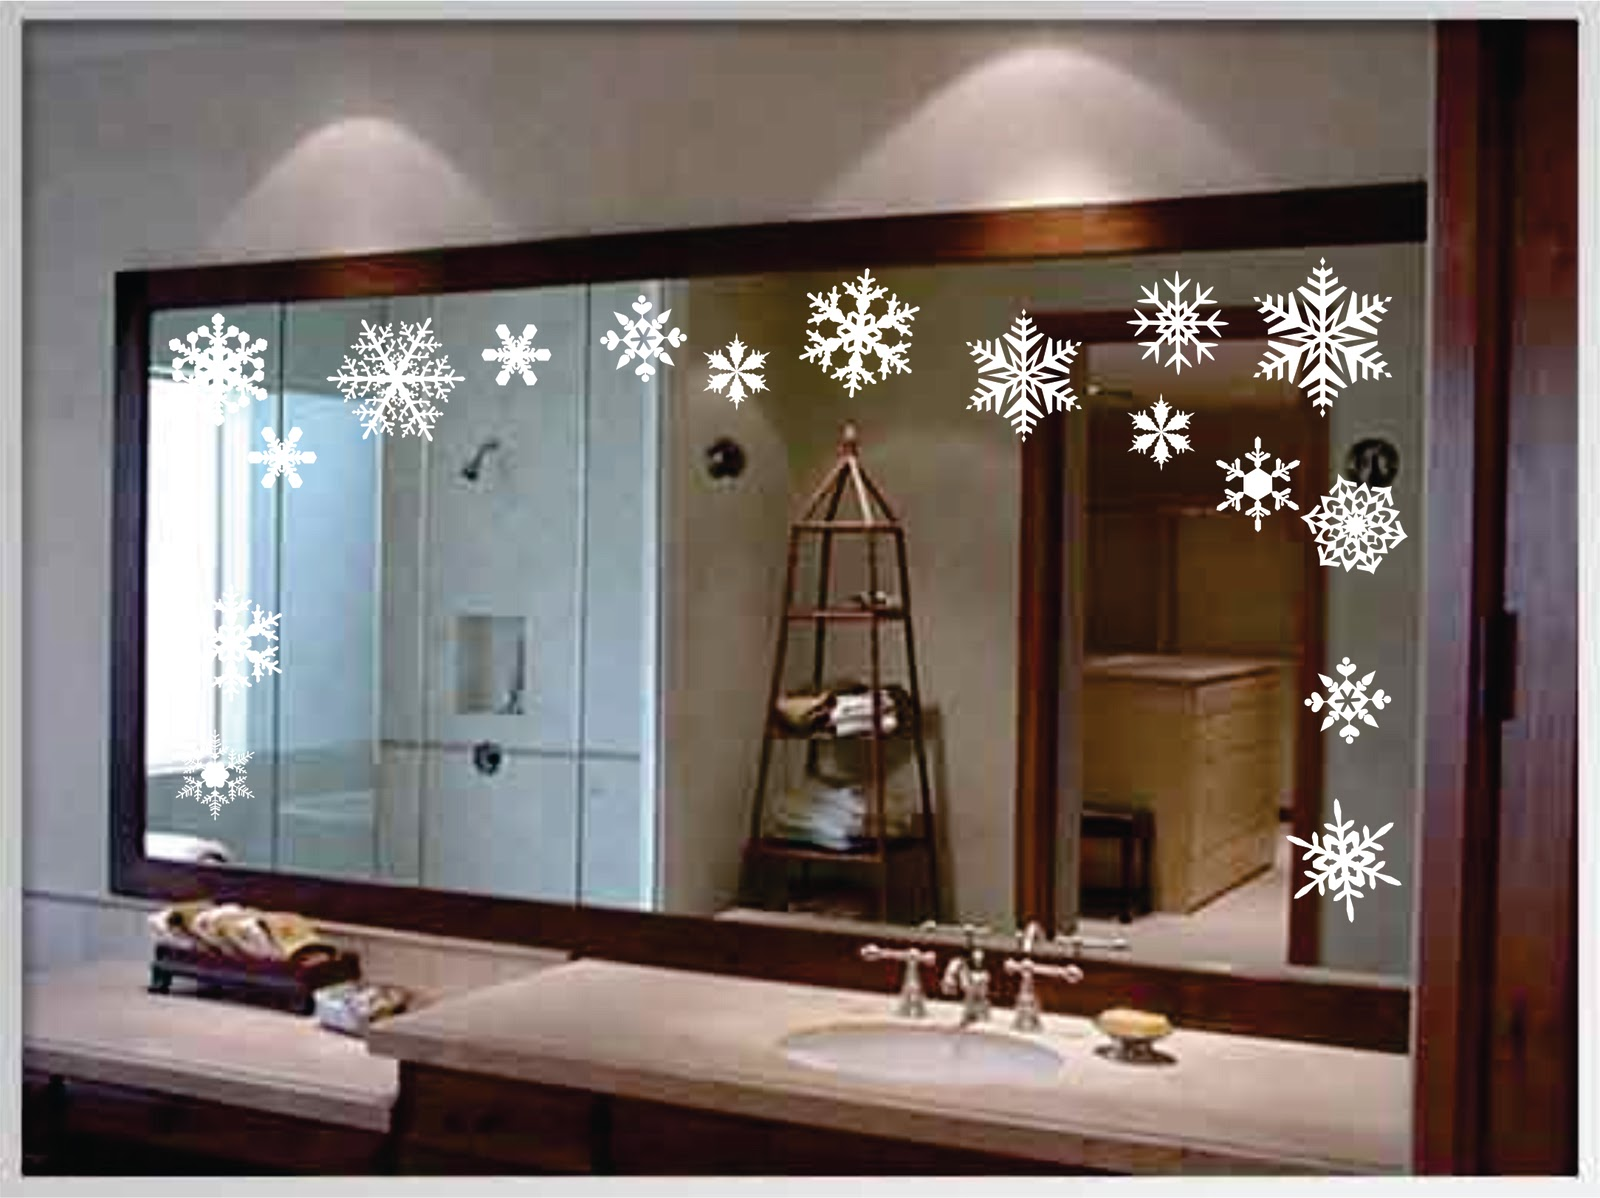 Walls that talk holiday decorating with vinyl wall lettering - Decorating bathroom mirrors ideas ...